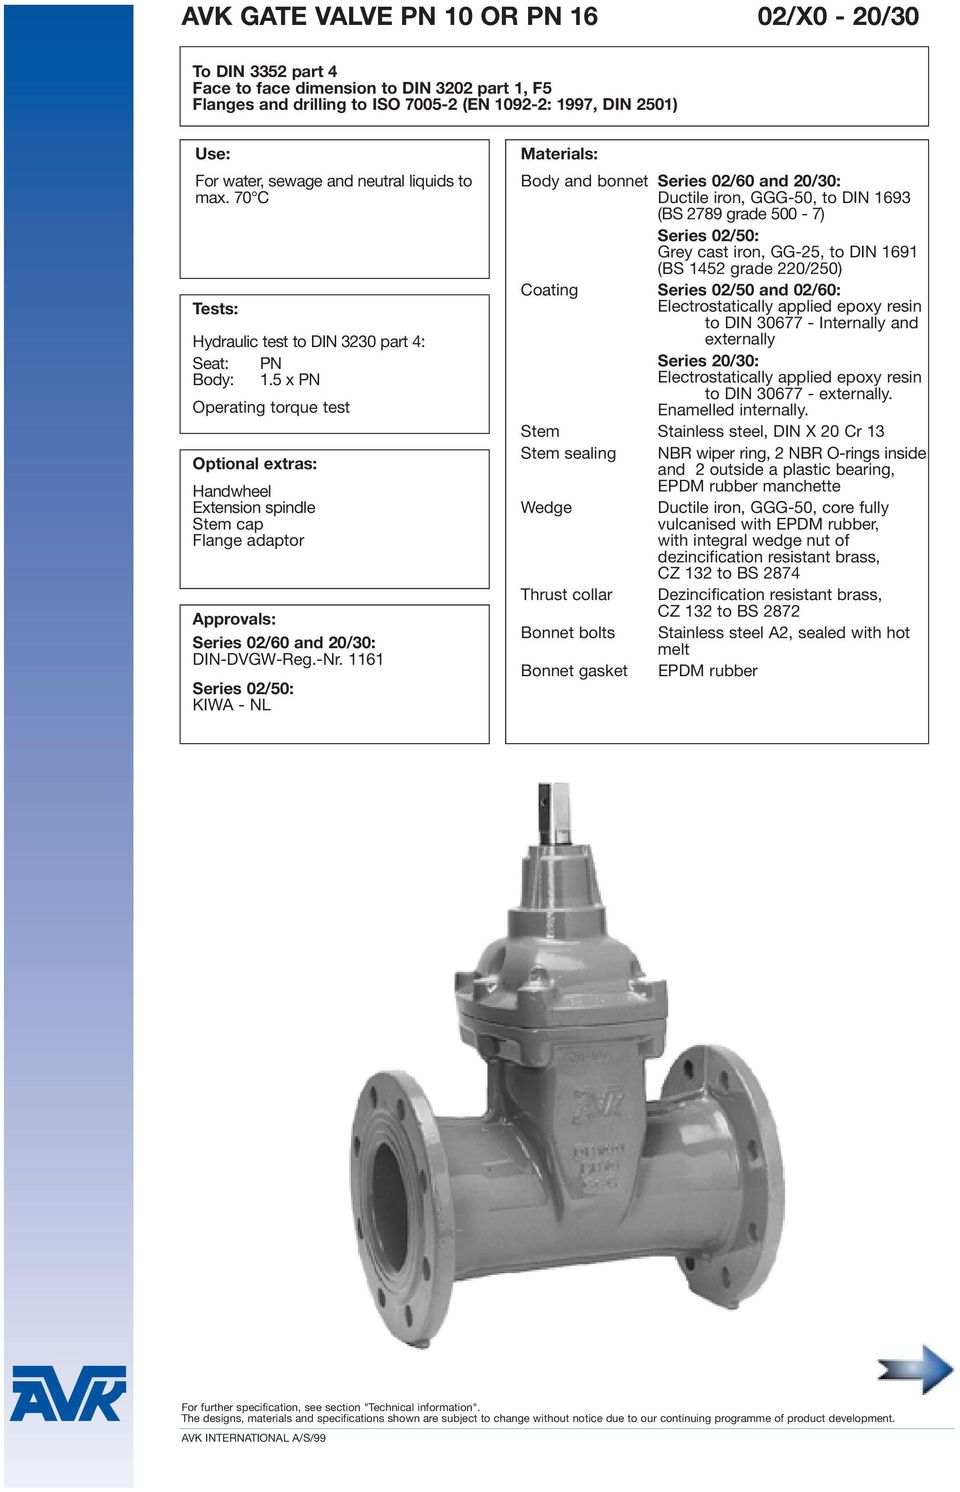 5 x PN Operating torque test Optional extras: Handwheel Extension spindle Stem cap Flange adaptor Approvals: Series 02/60 and 20/30: DIN-DVGW-Reg.-Nr.